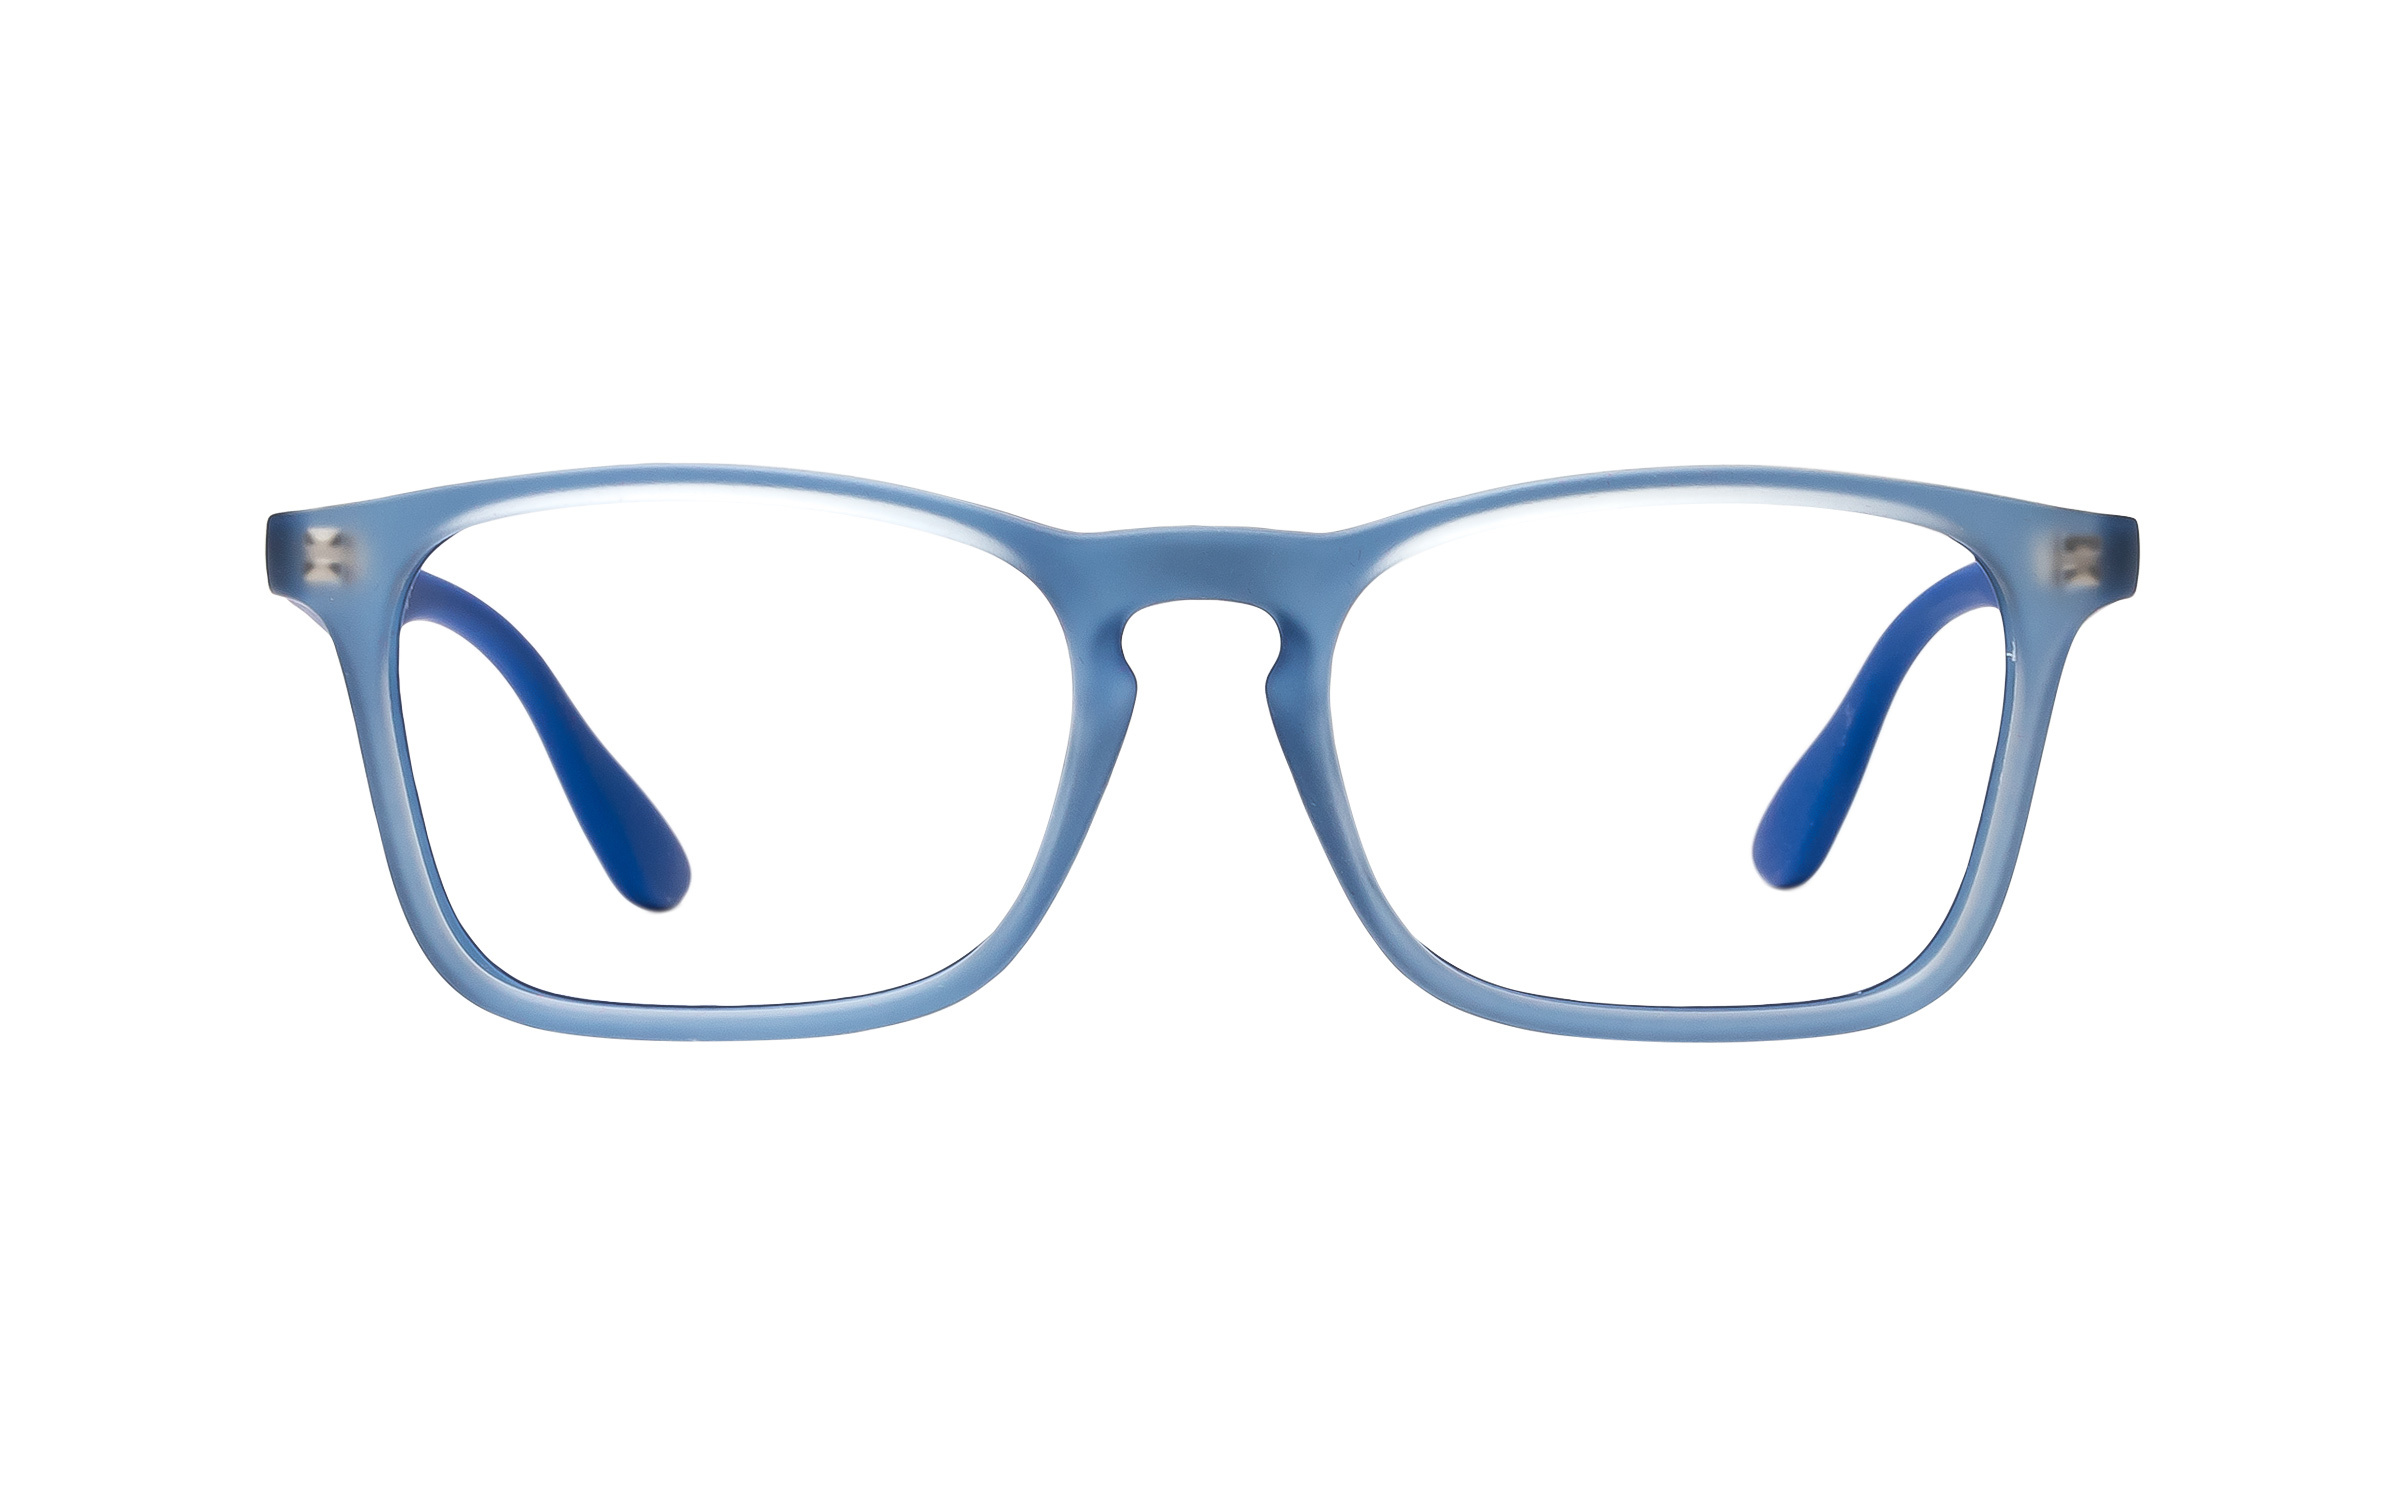 Luxottica Ray-Ban Wayfarer Junior Vista RY1553 3668 (48) Eyeglasses and Frame in Rubber Electric Blue/Clear | Acetate - Online Coastal